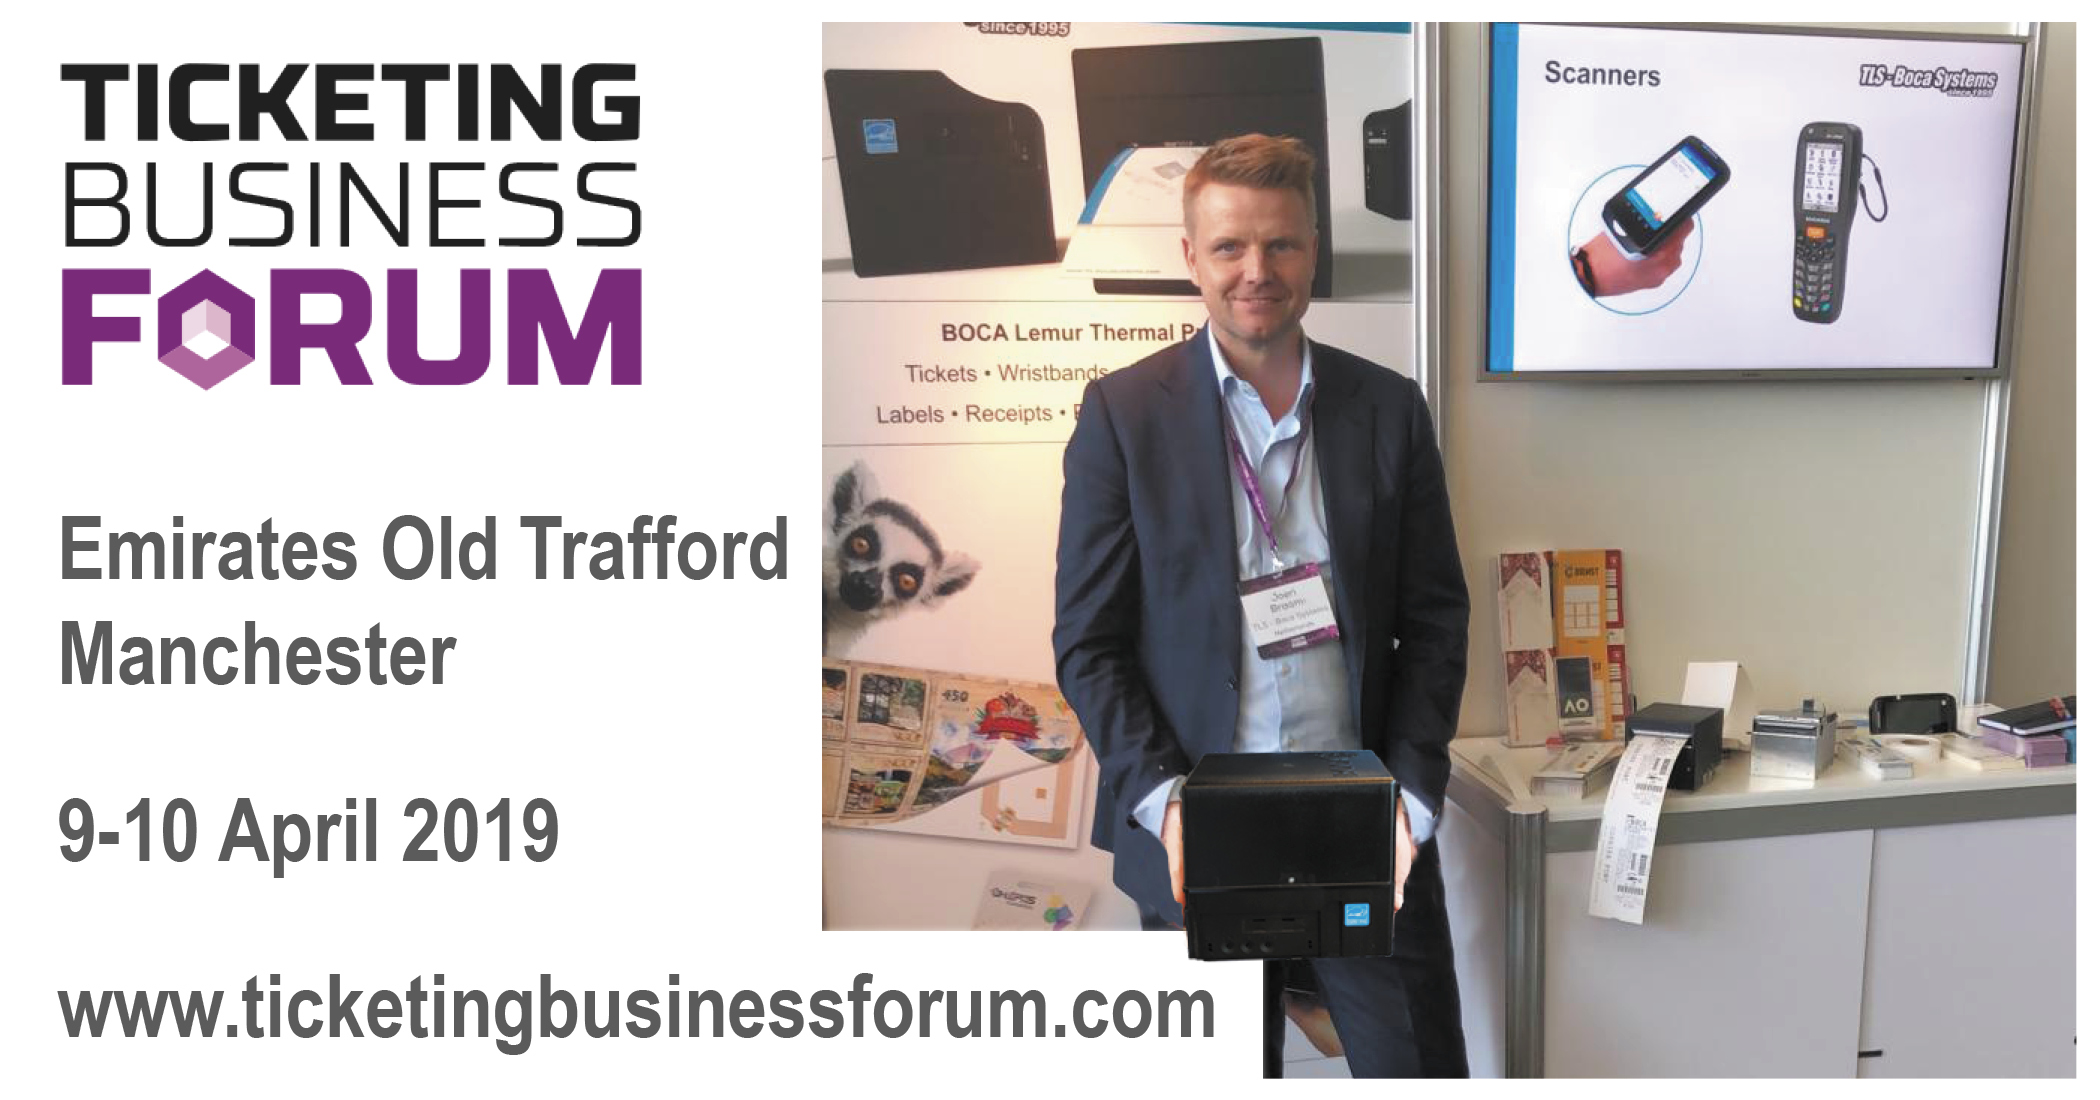 Meet us at the Ticketing Business Forum!